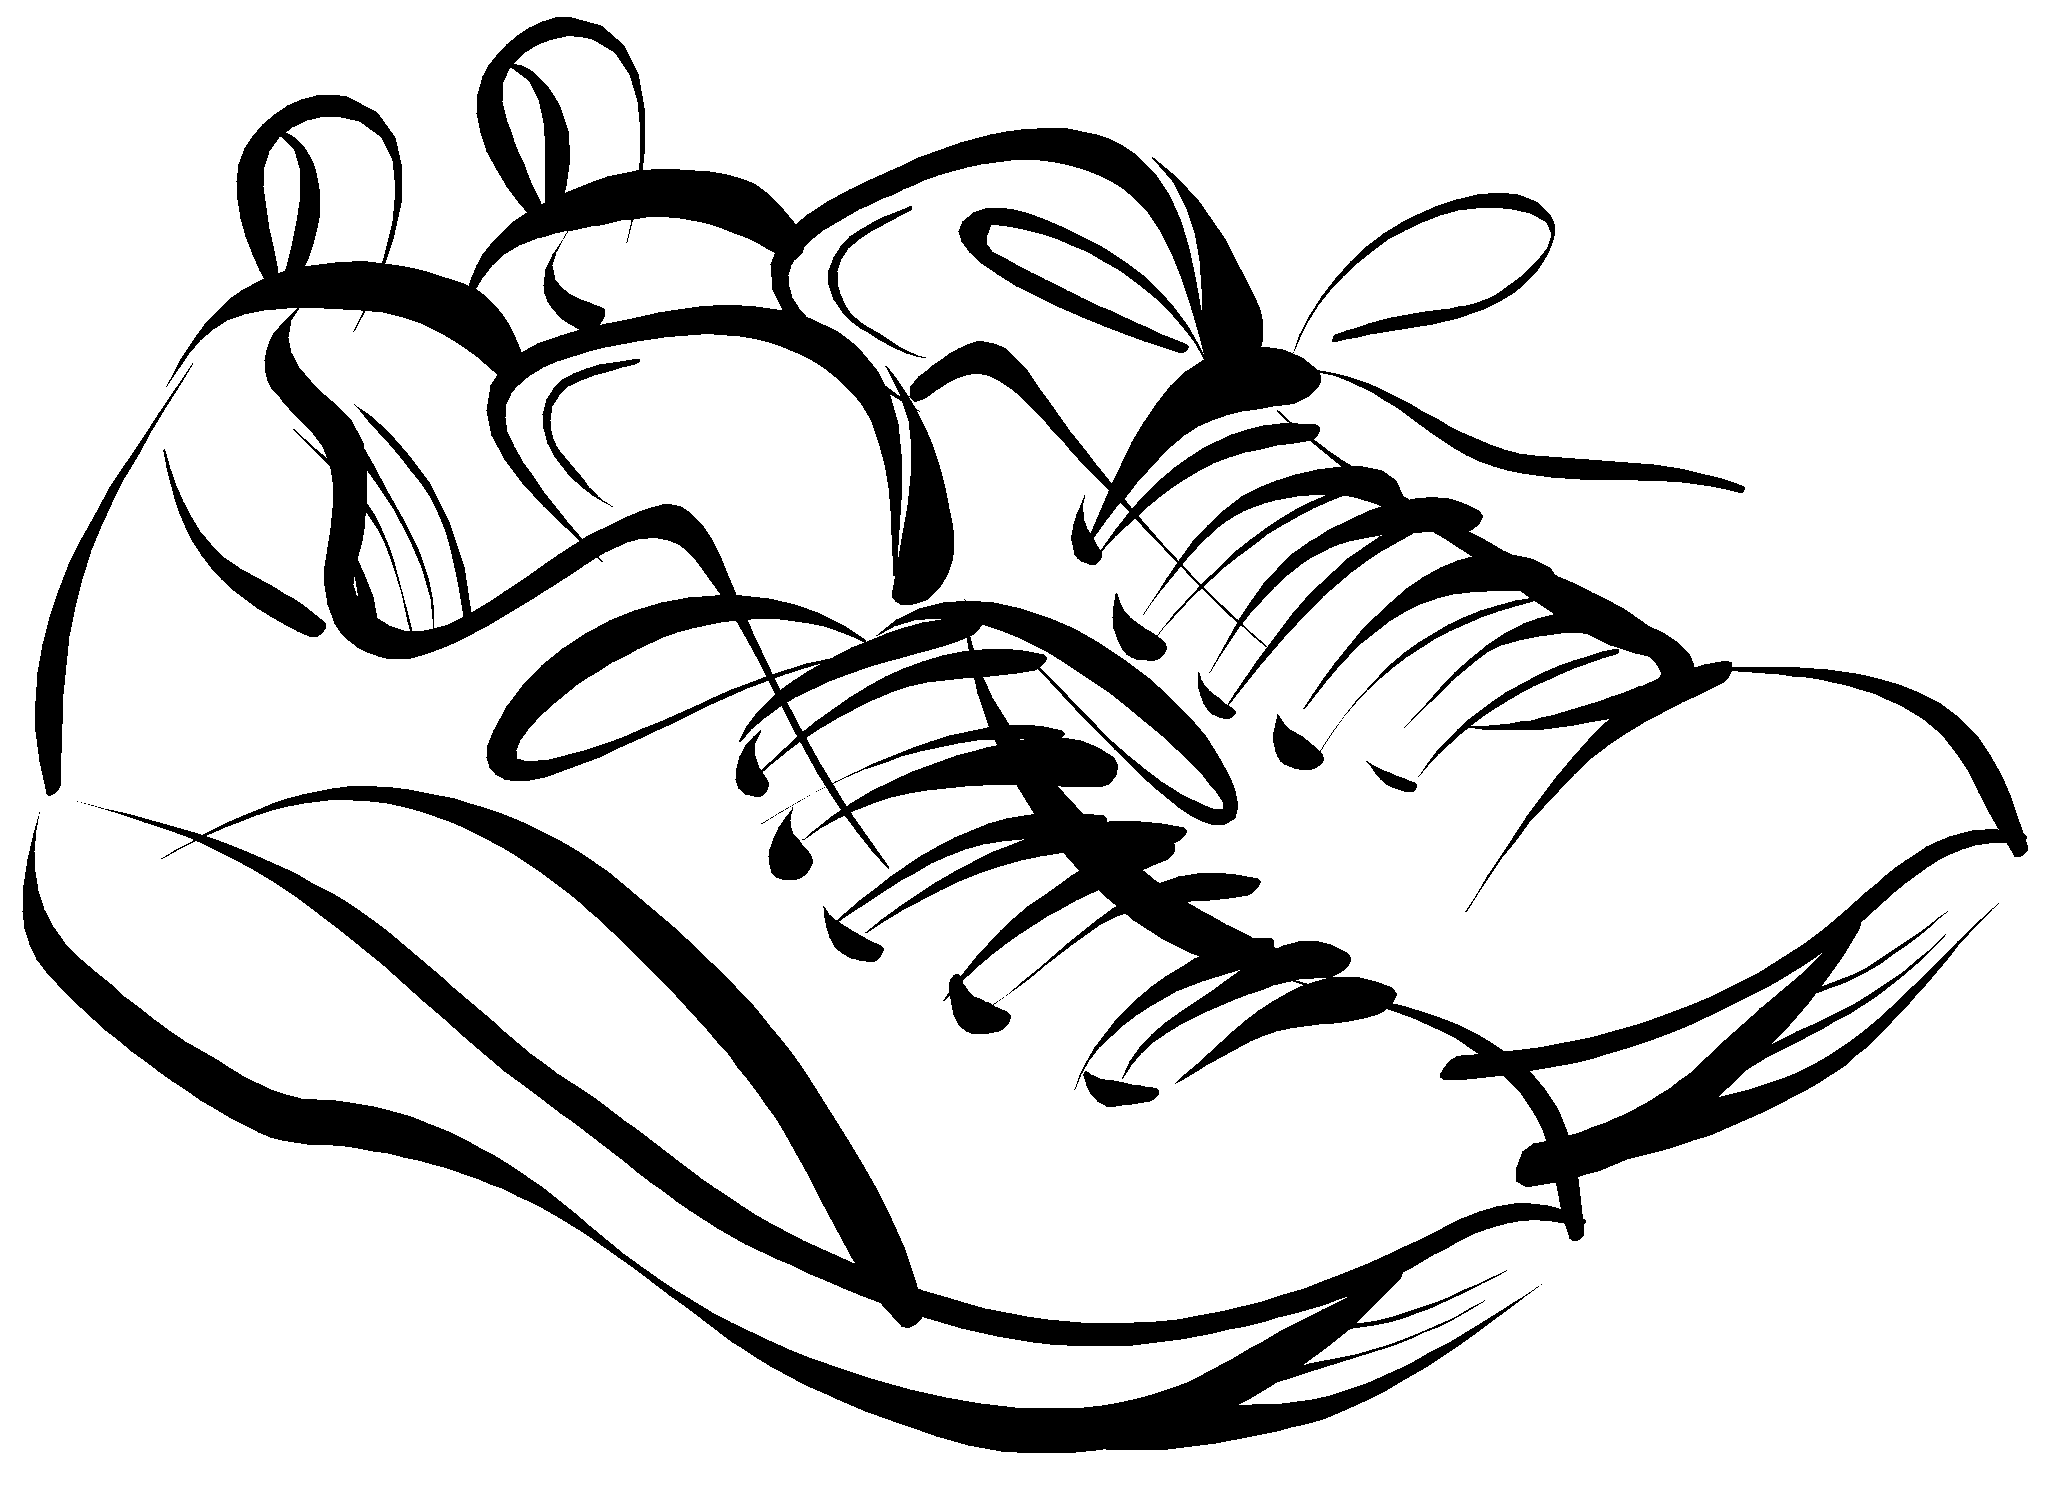 Cartoon sport shoe png. Collection of kids